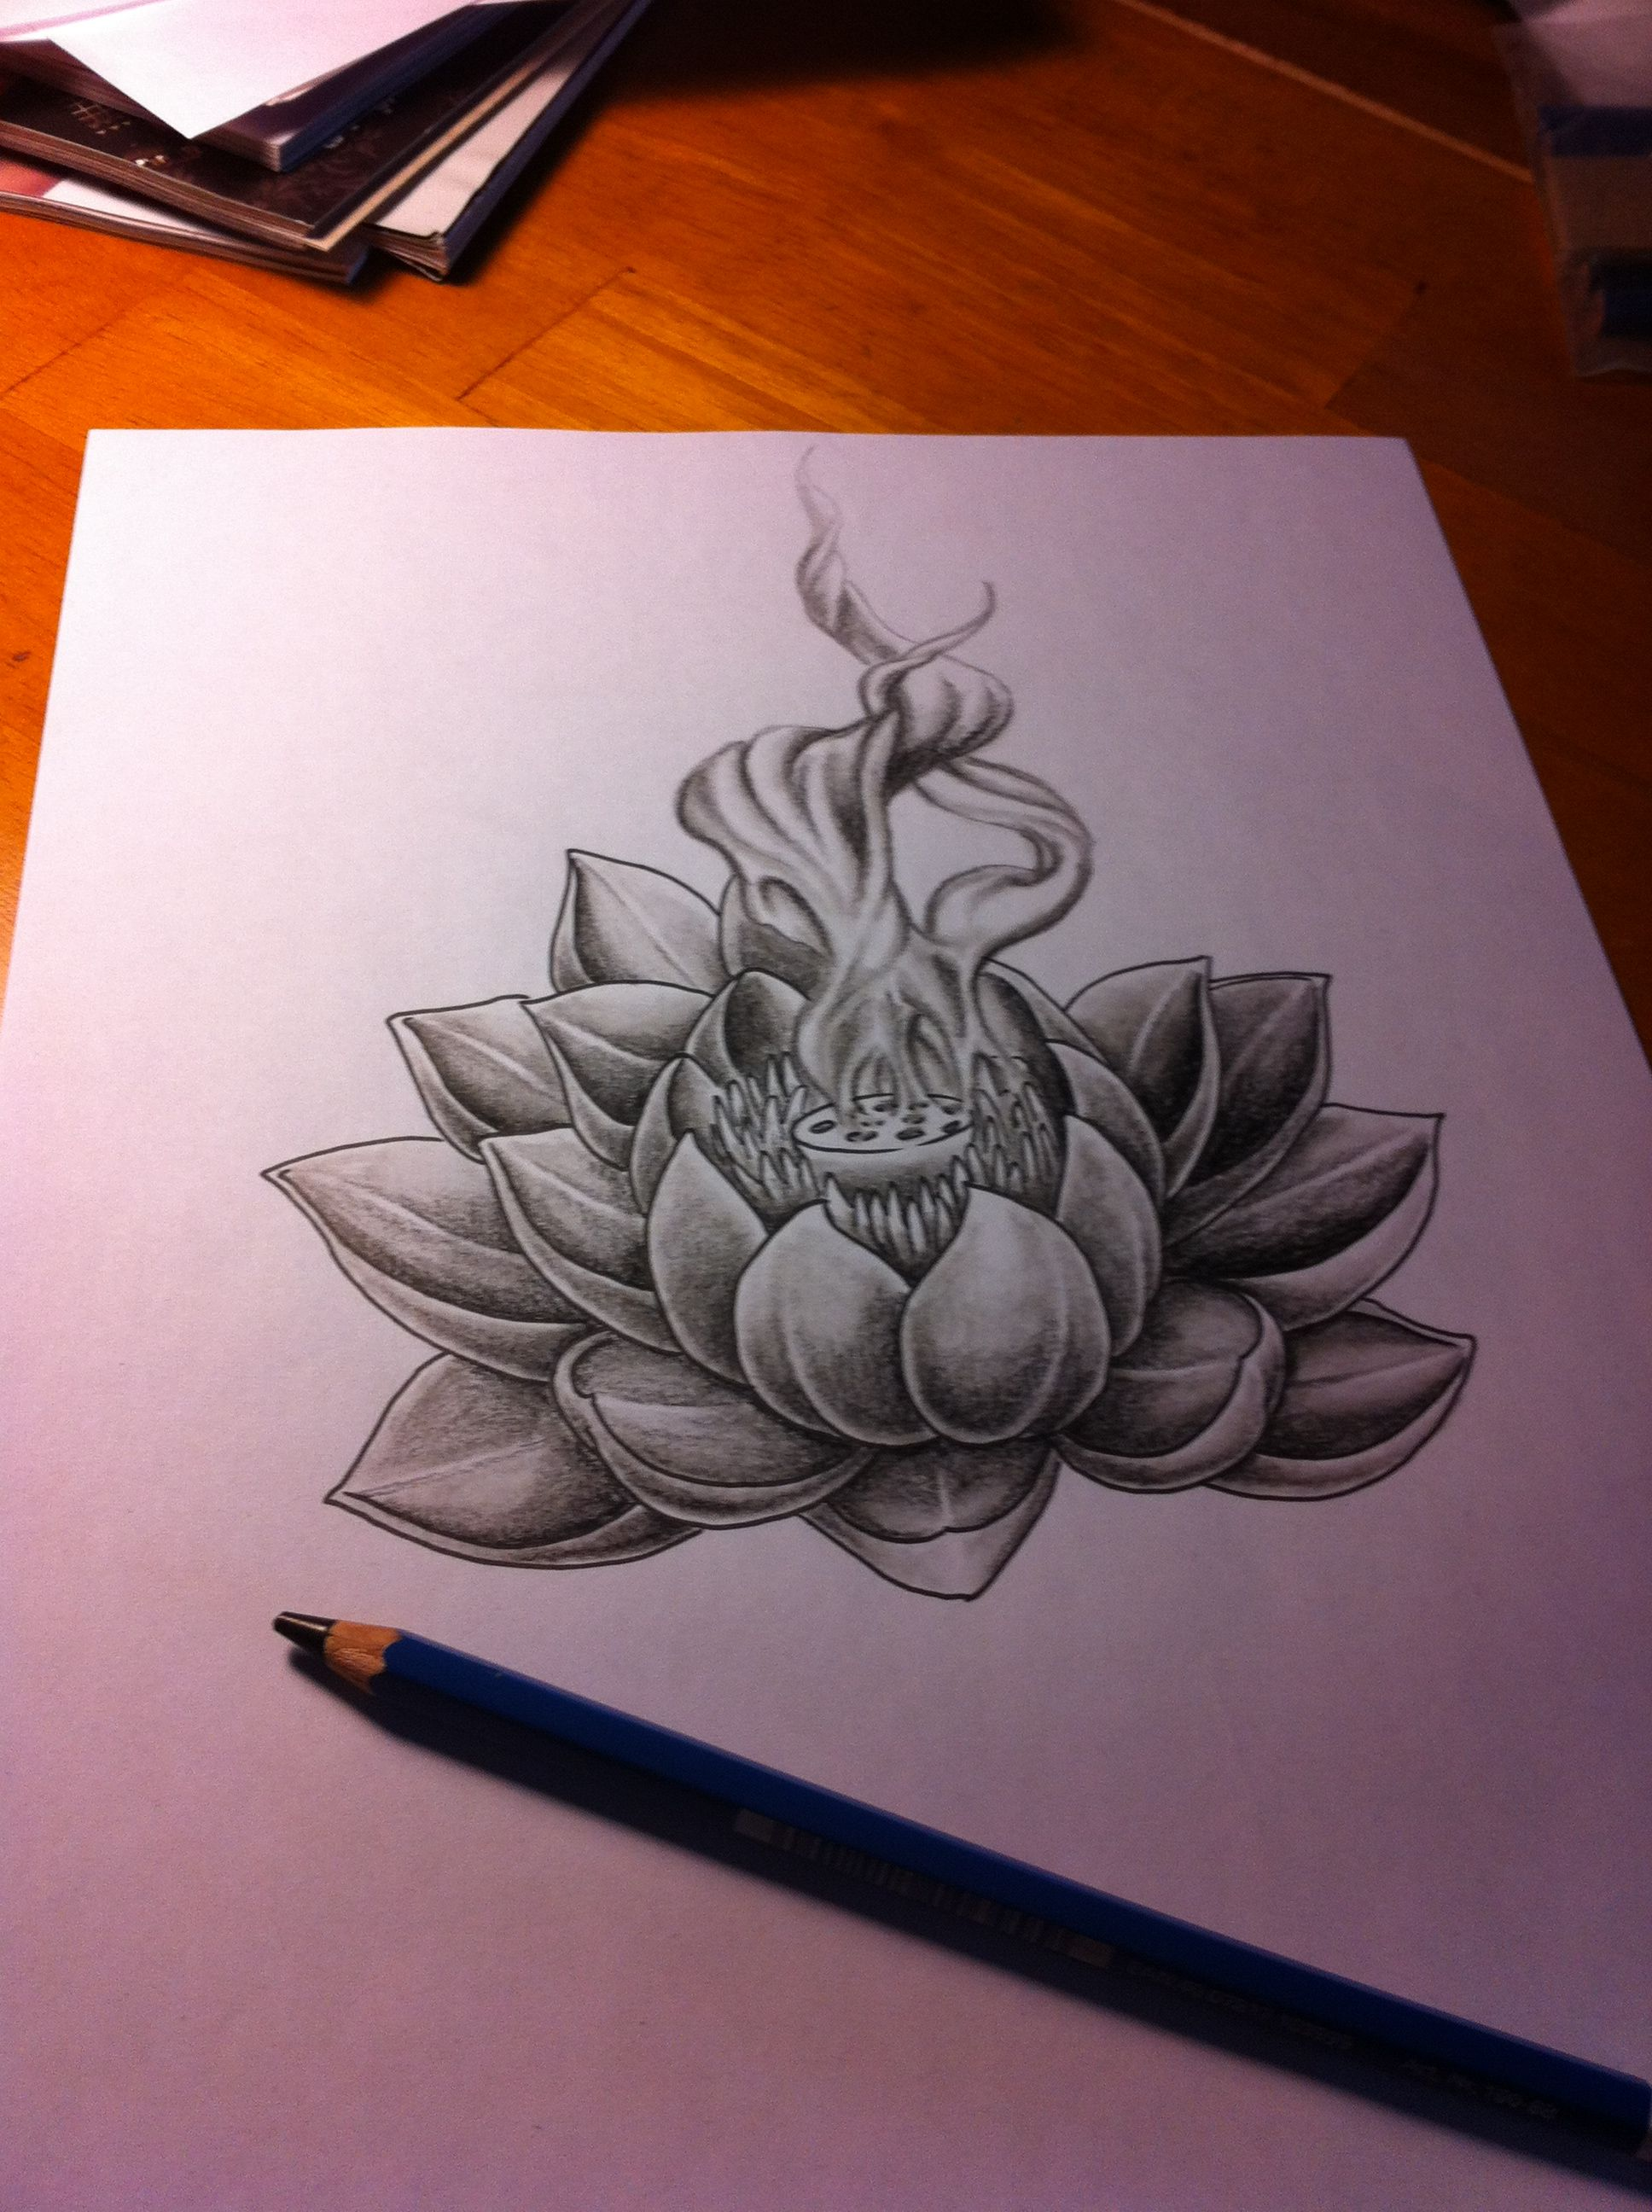 Lotus flower tattoo - Flower Of Life Tattoos This Is Our First Sneak Peek Lotus Flower